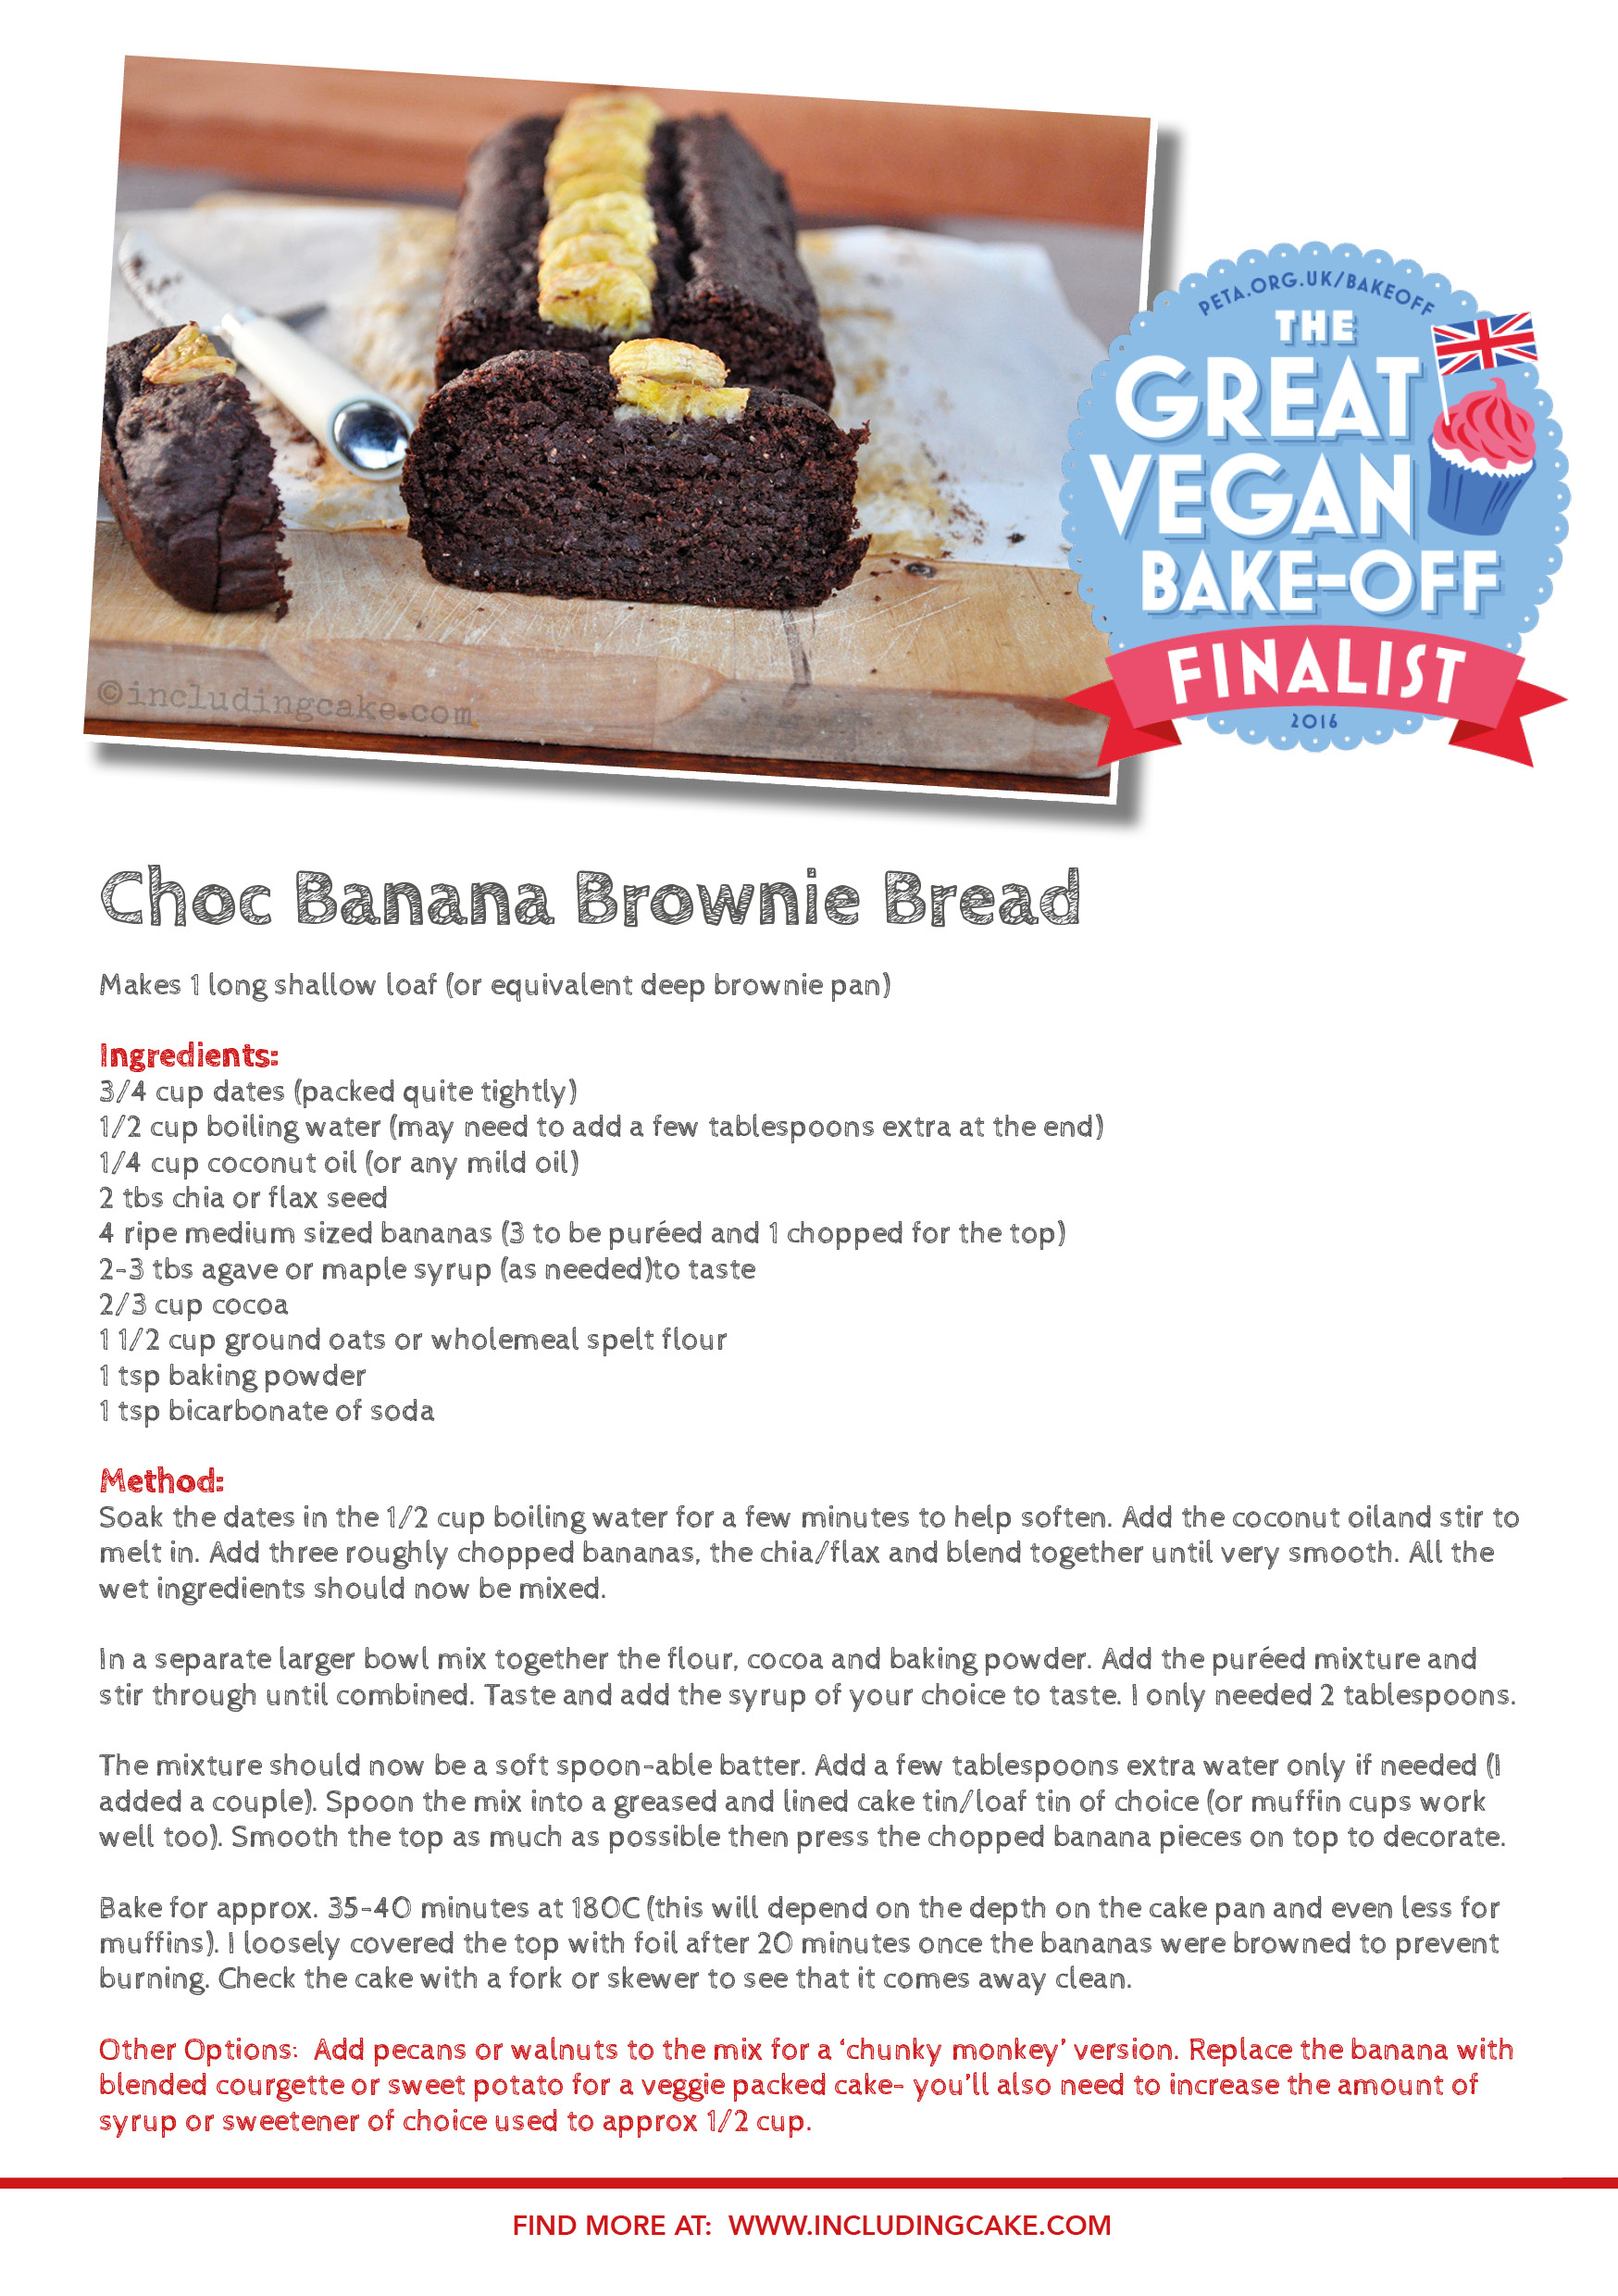 PETA bake off finalist : Choc Banana Brownie Bread Recipe Card - One of my top recipes - it even got shortlisted in the Vegan Bake Off. What happens when chocolate brownies and banana bread collide? You're about to find out!